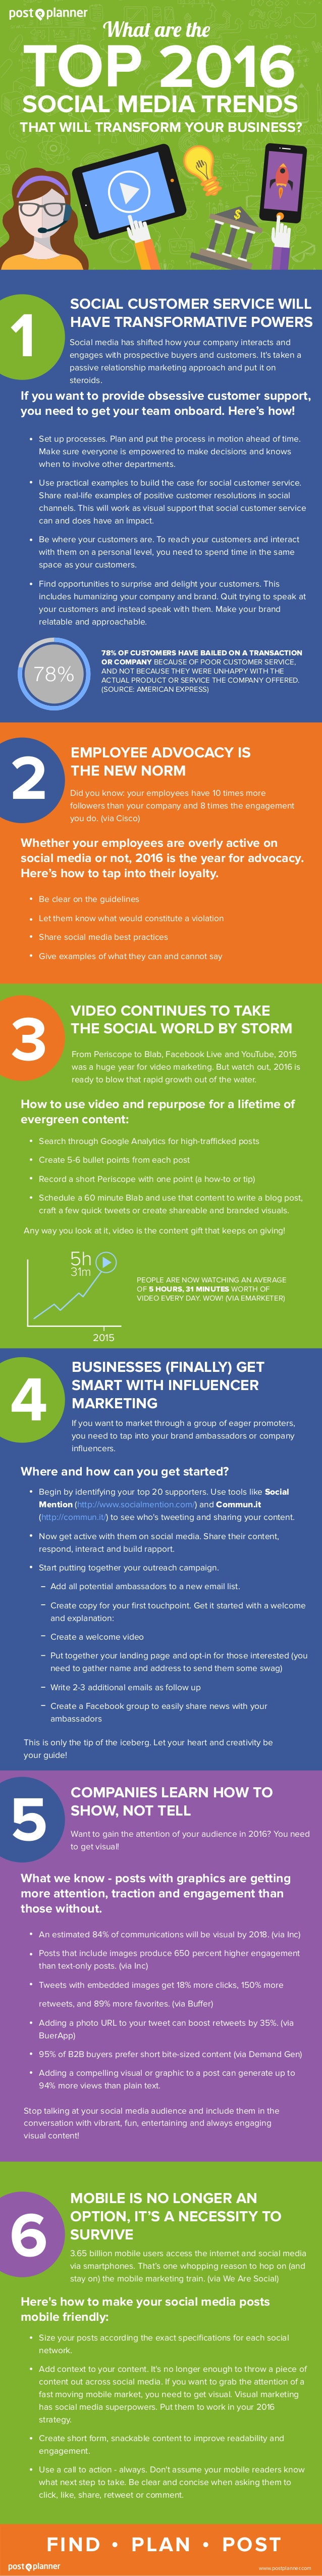 6-top-social-media-trends-that-will-transform-your-business-in-2016-1-638